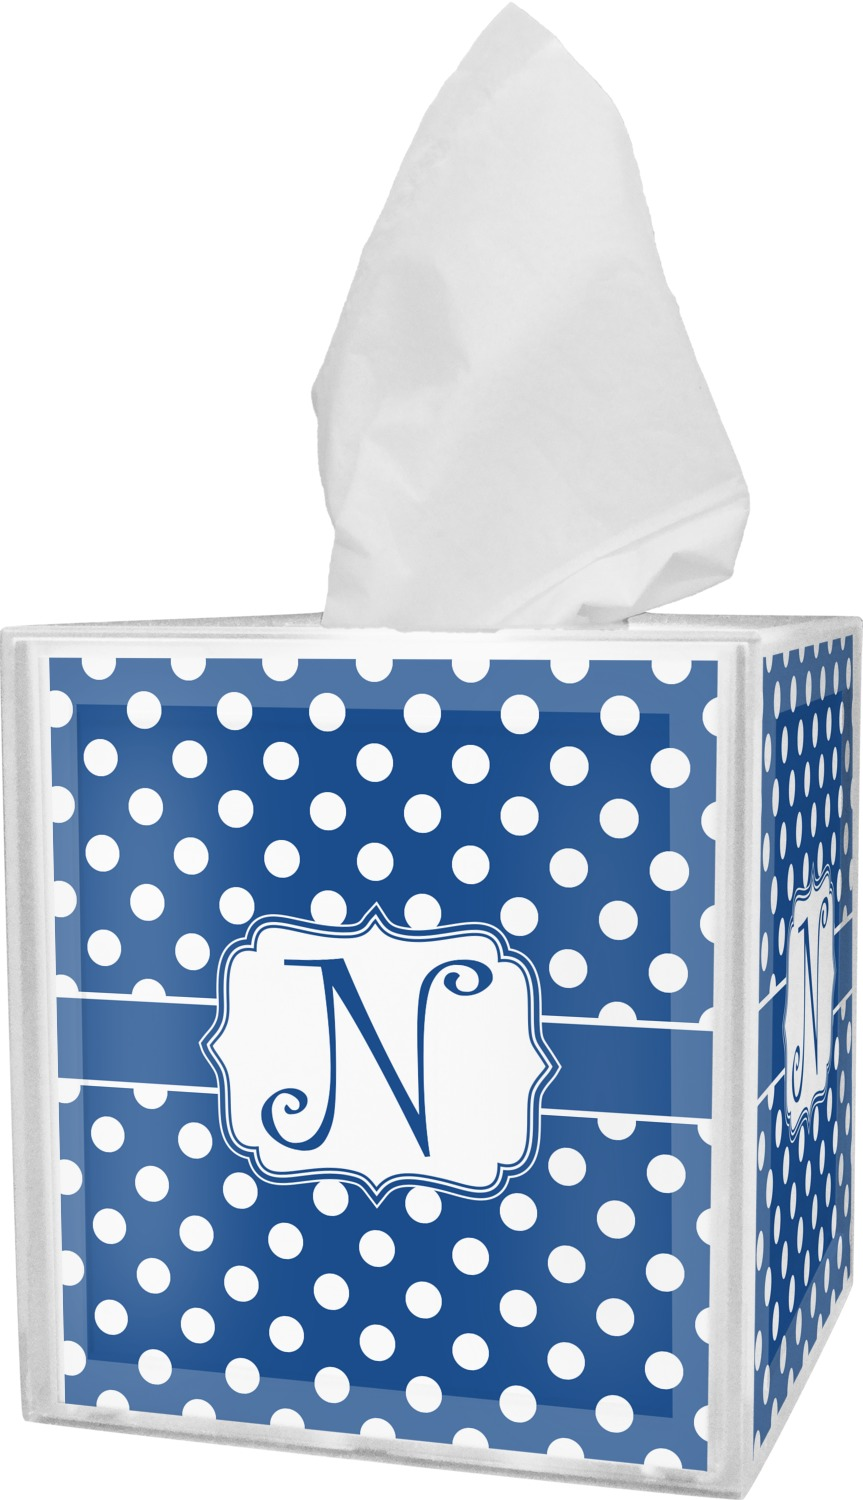 Polka Dots Tissue Box Cover Personalized Youcustomizeit